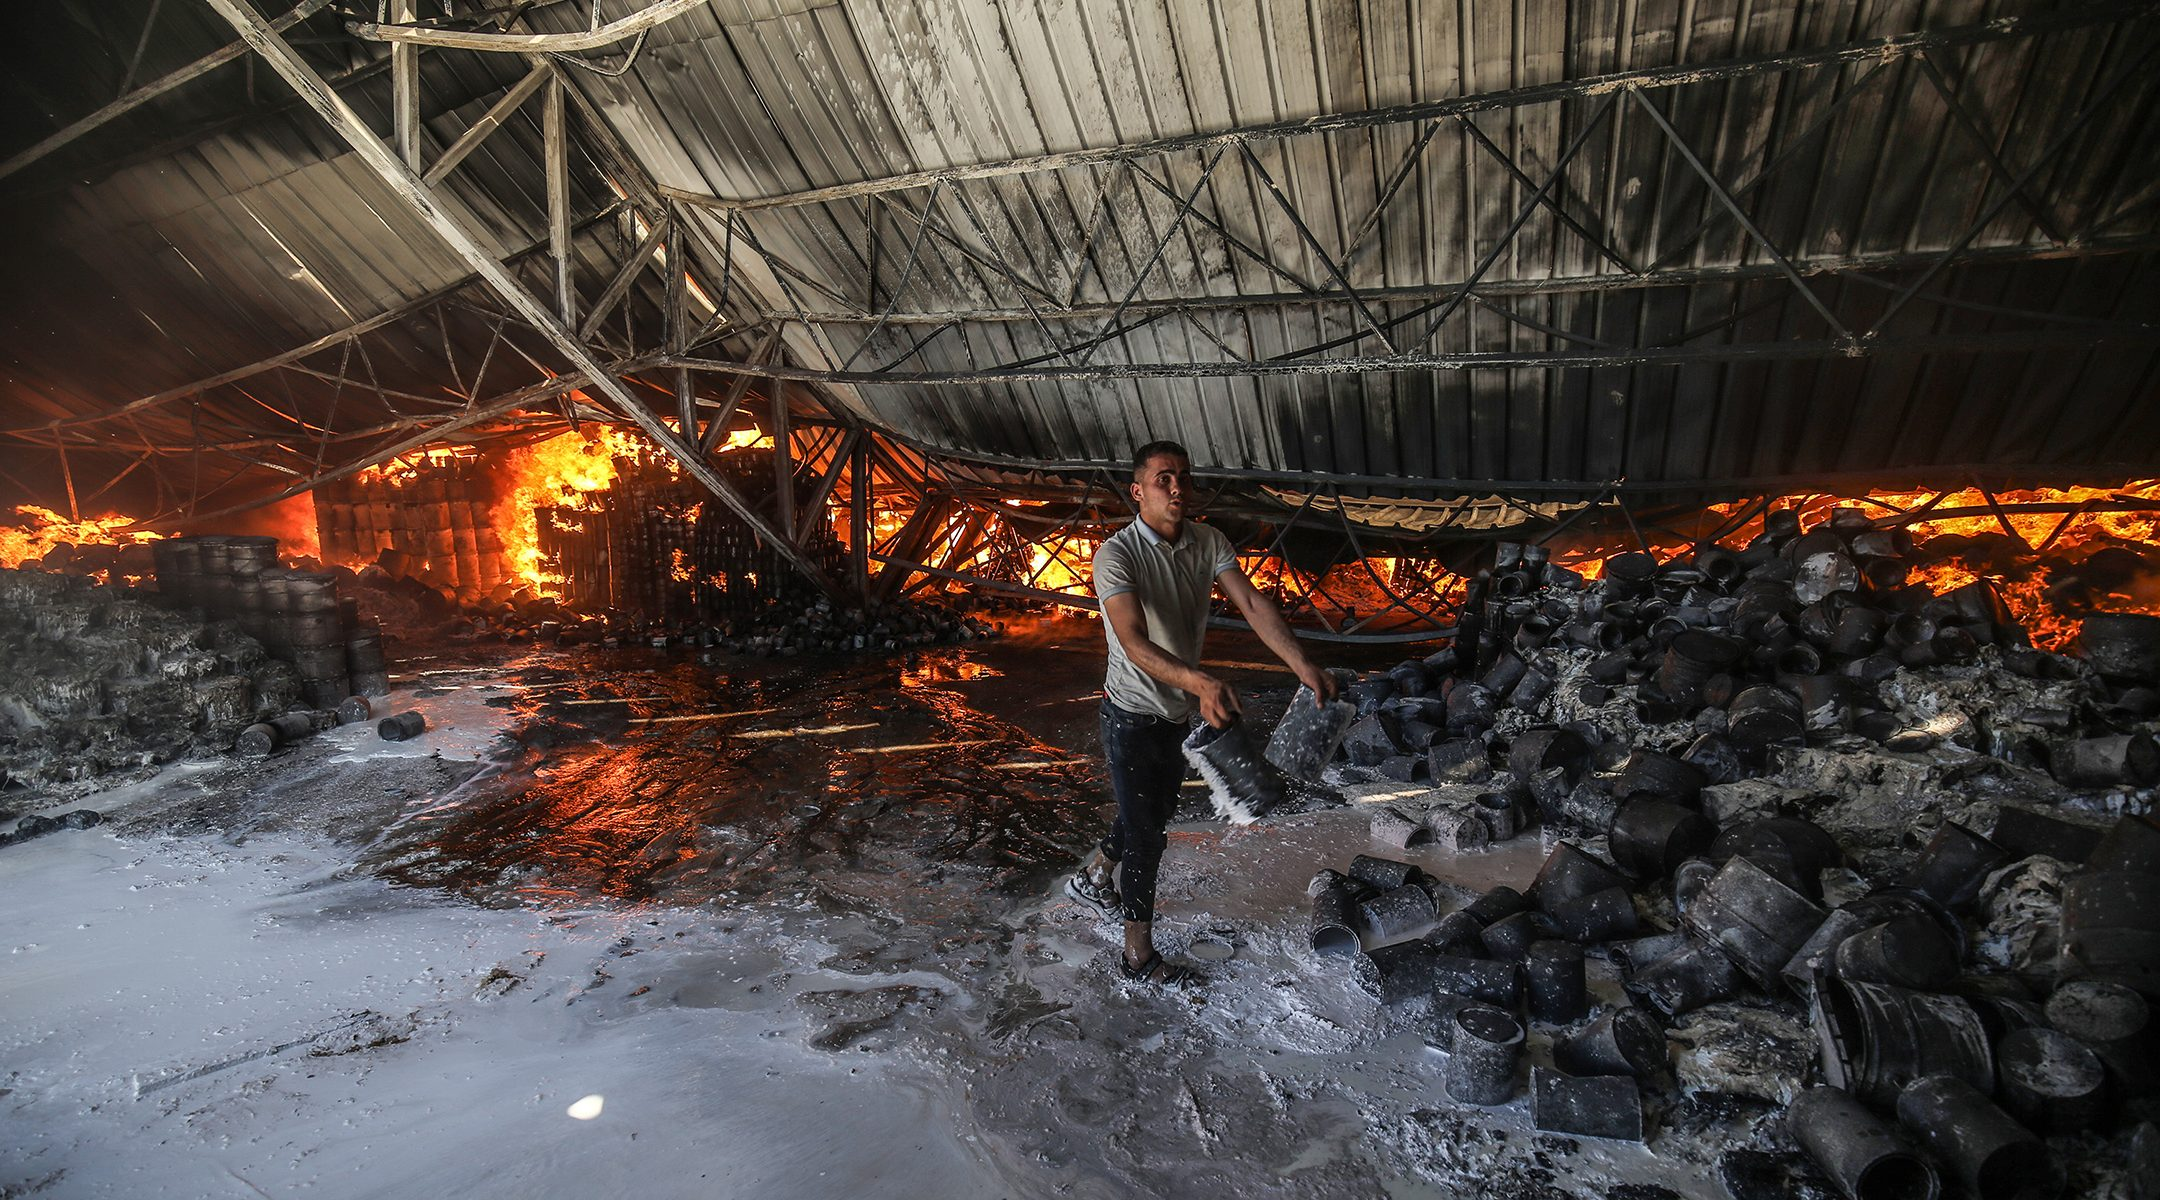 Firefighters attempt to extinguish a fire at a warehouse which was hit during an Israeli airstrike in Rafah, in the southern Gaza Strip, on May 18, 2021. (Abed Rahim Khatib/Flash90)